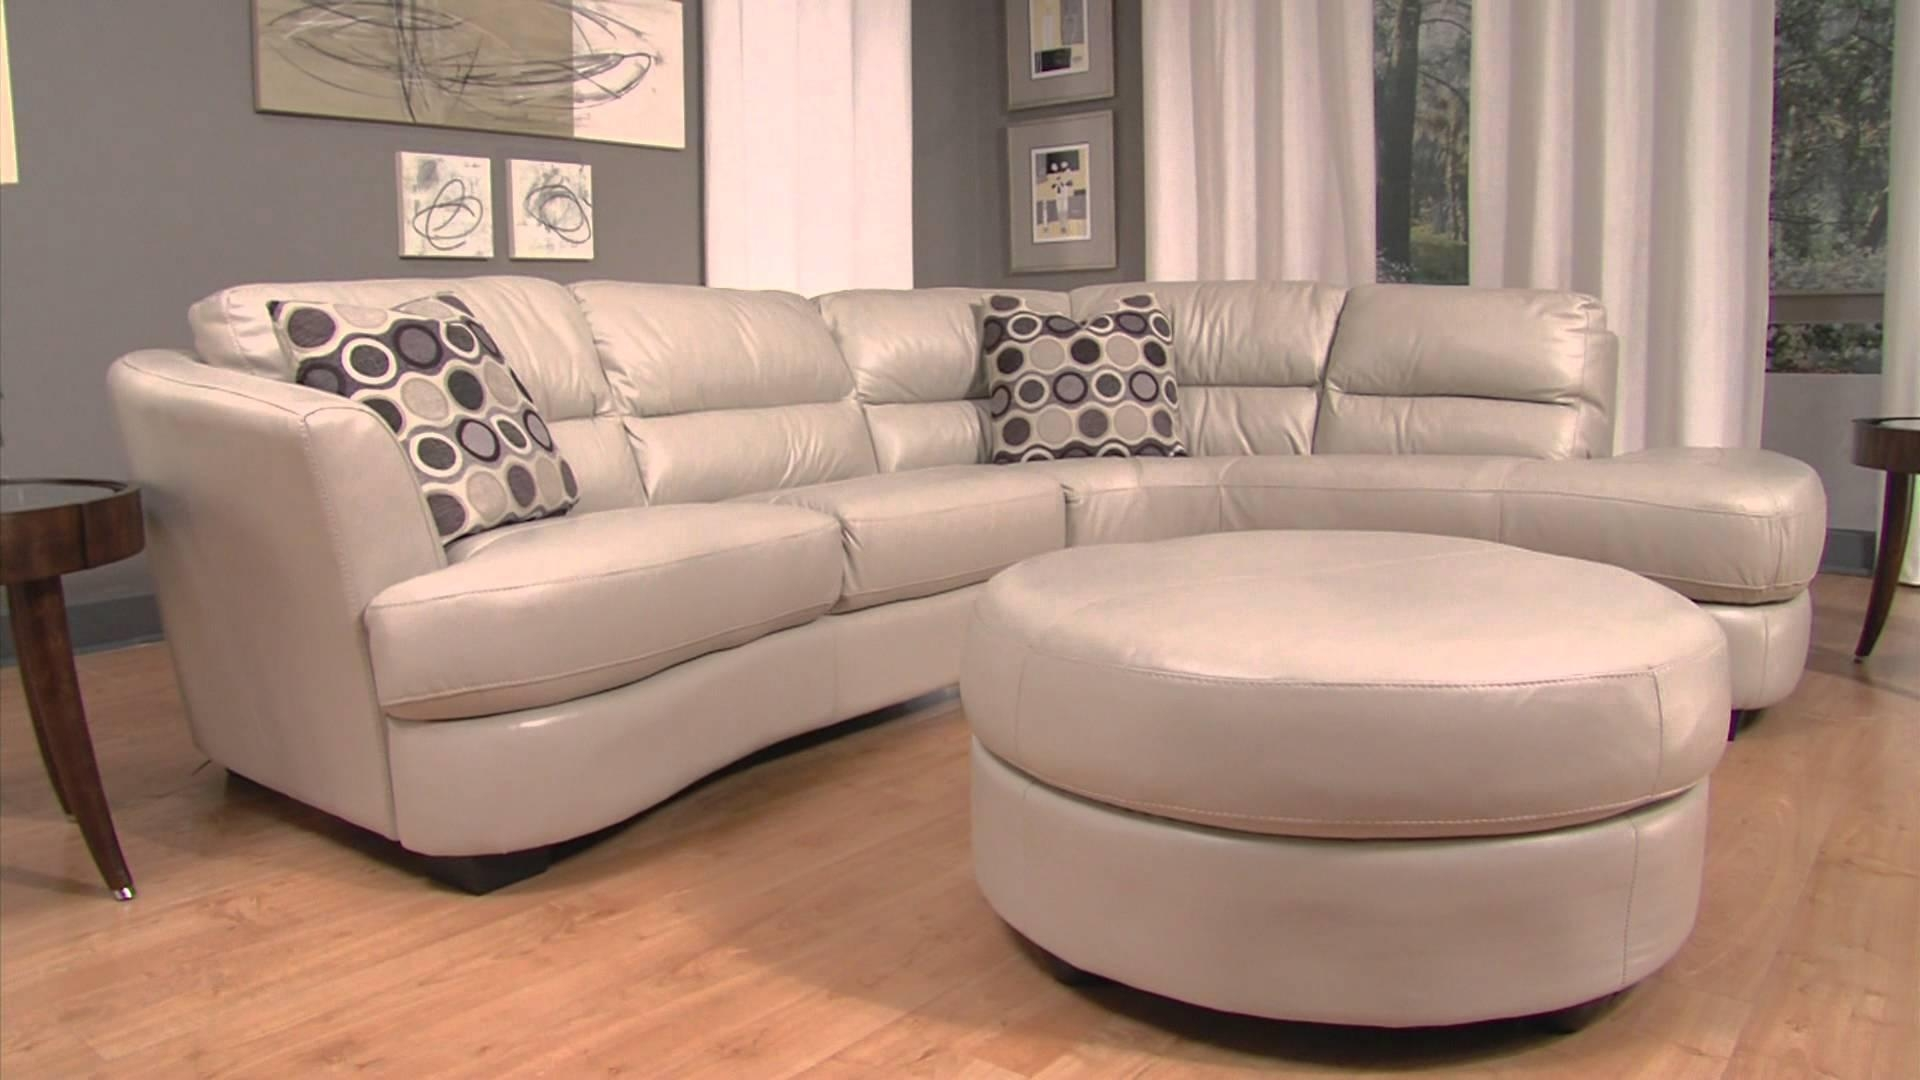 Berkline Andlynn Sofa Set Costco 3 Berkline Andlynn Sofa Set Throughout Berkline Leather Sofas (View 17 of 20)